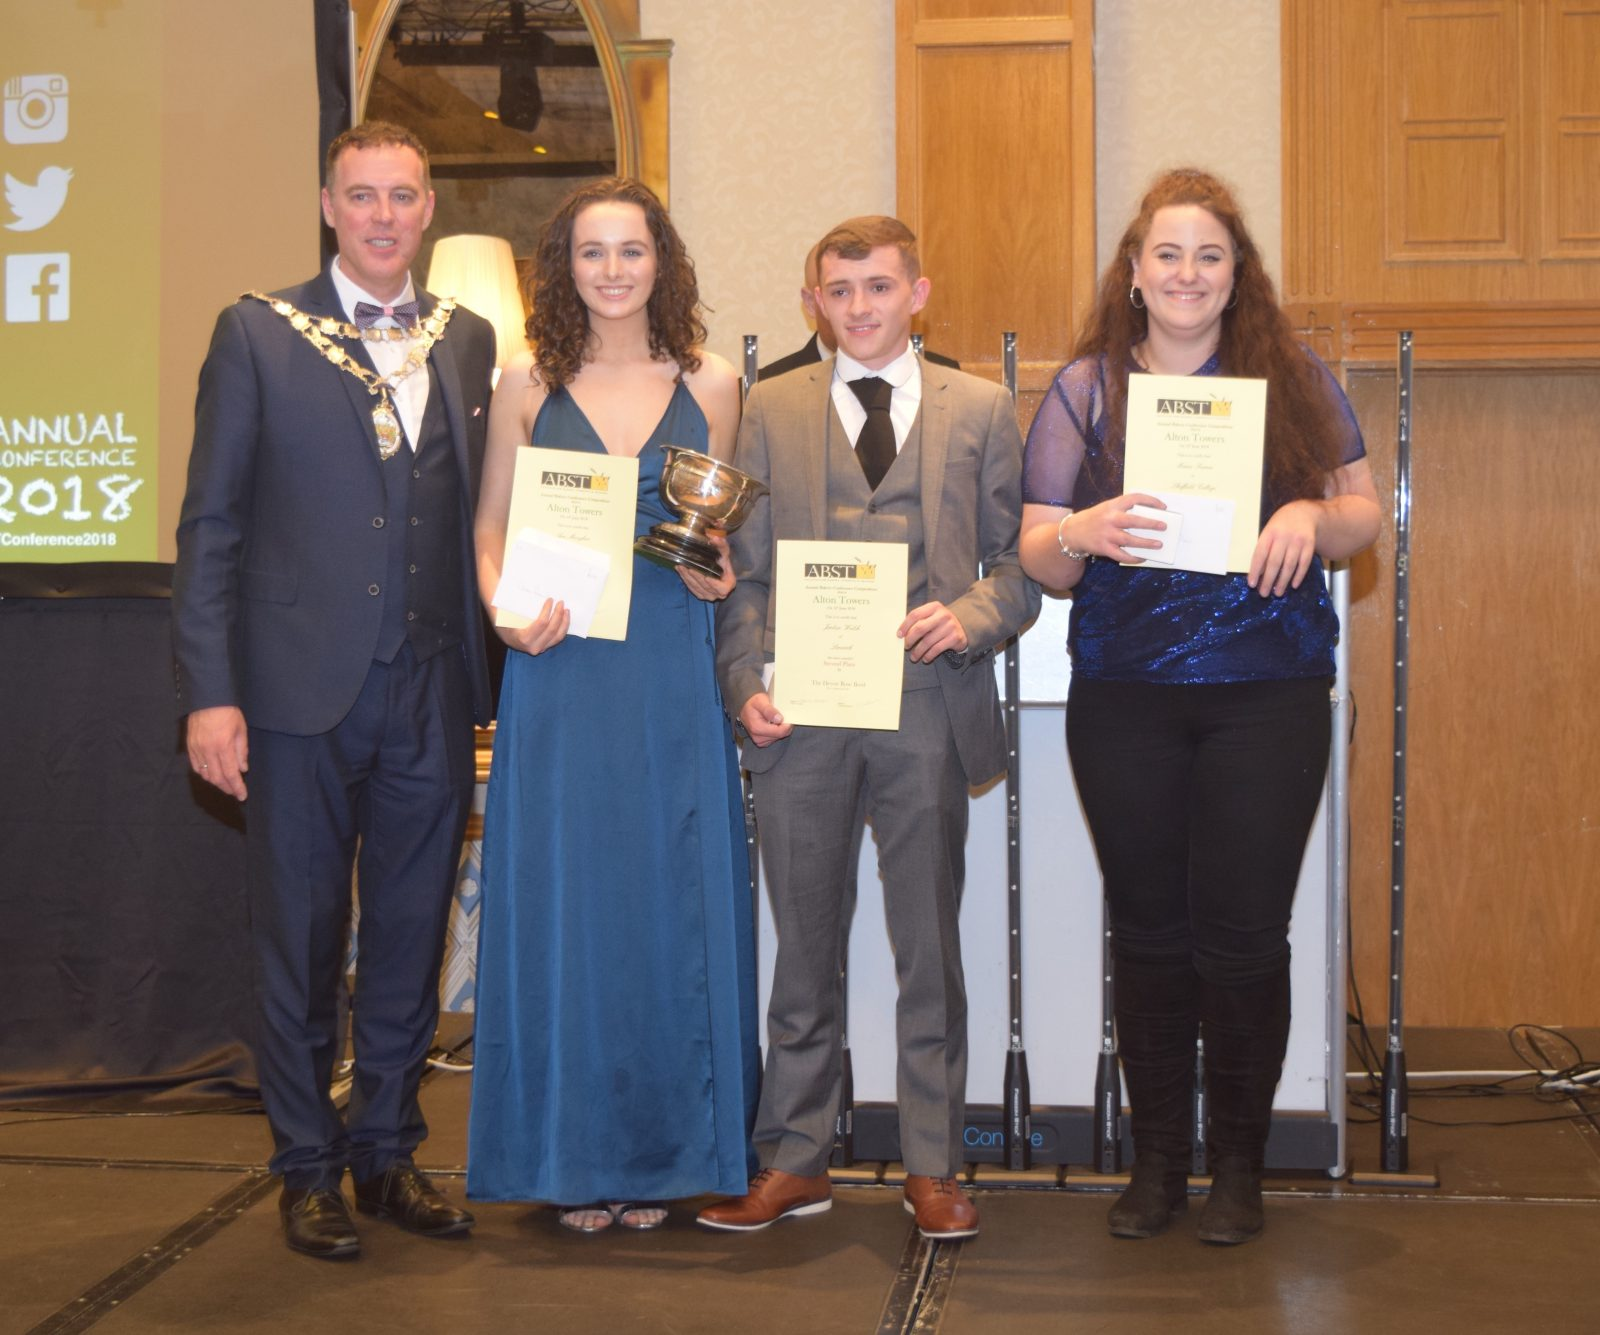 alliance-for-bakery-students-and-trainees-winners